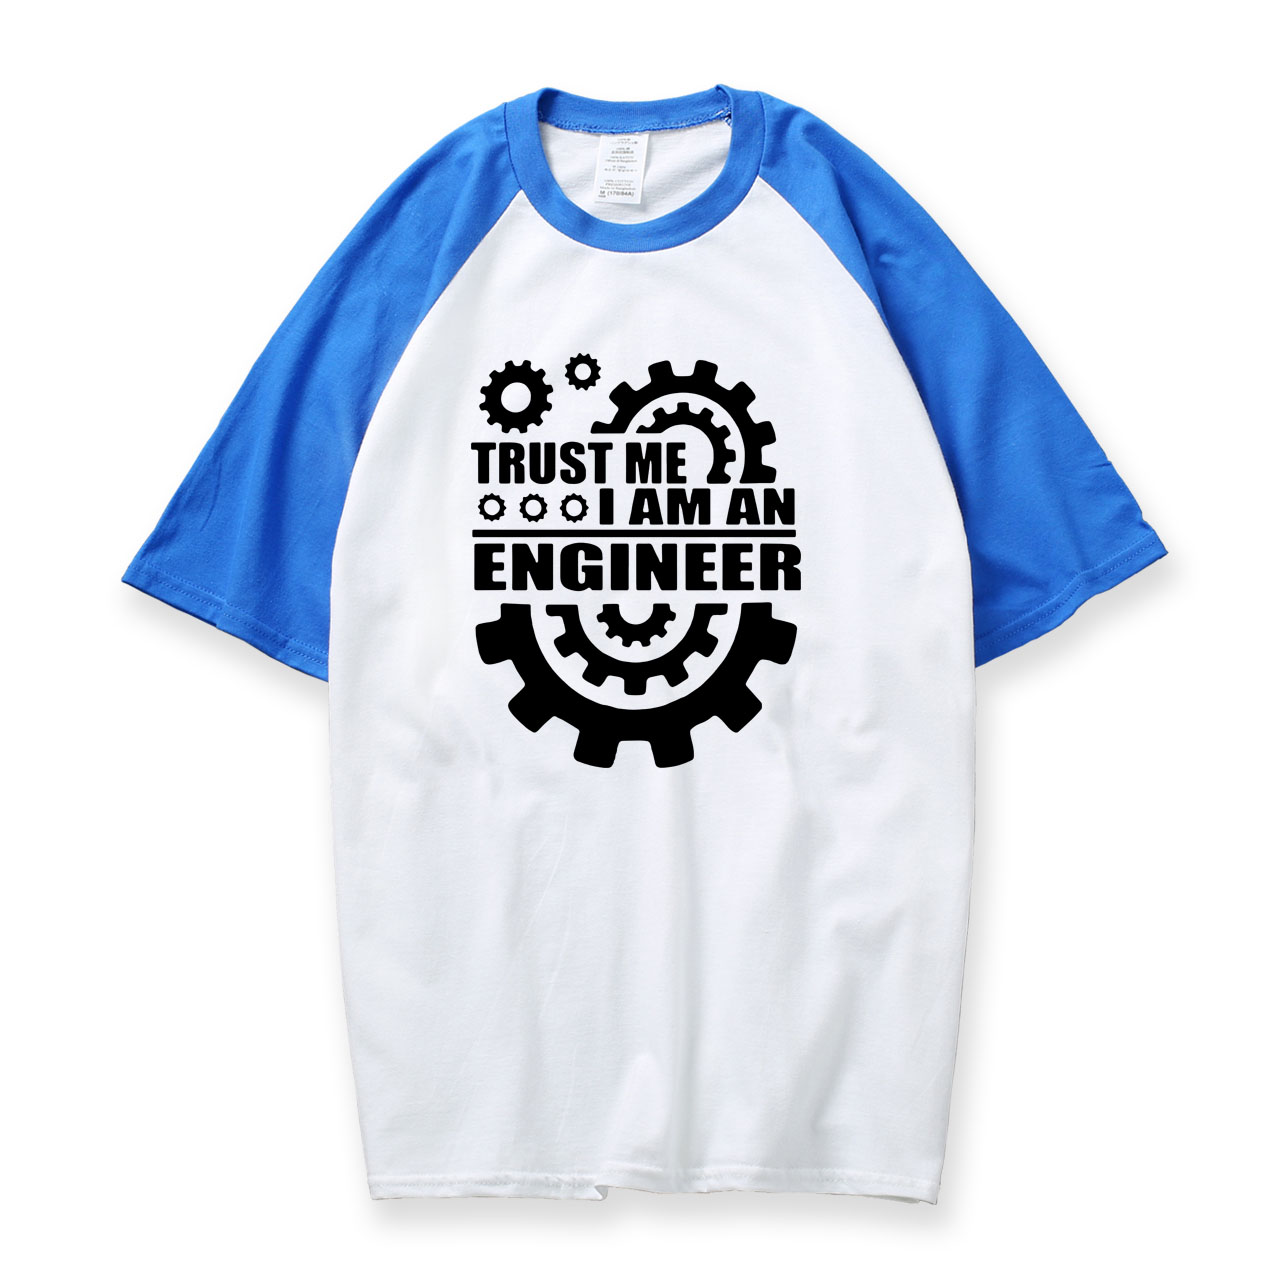 Trust Me I Am An Engineer Humor tshirt men 2018 new summer 100% cotton raglan sleeve t shirt fashion basic top tees swaetshirt